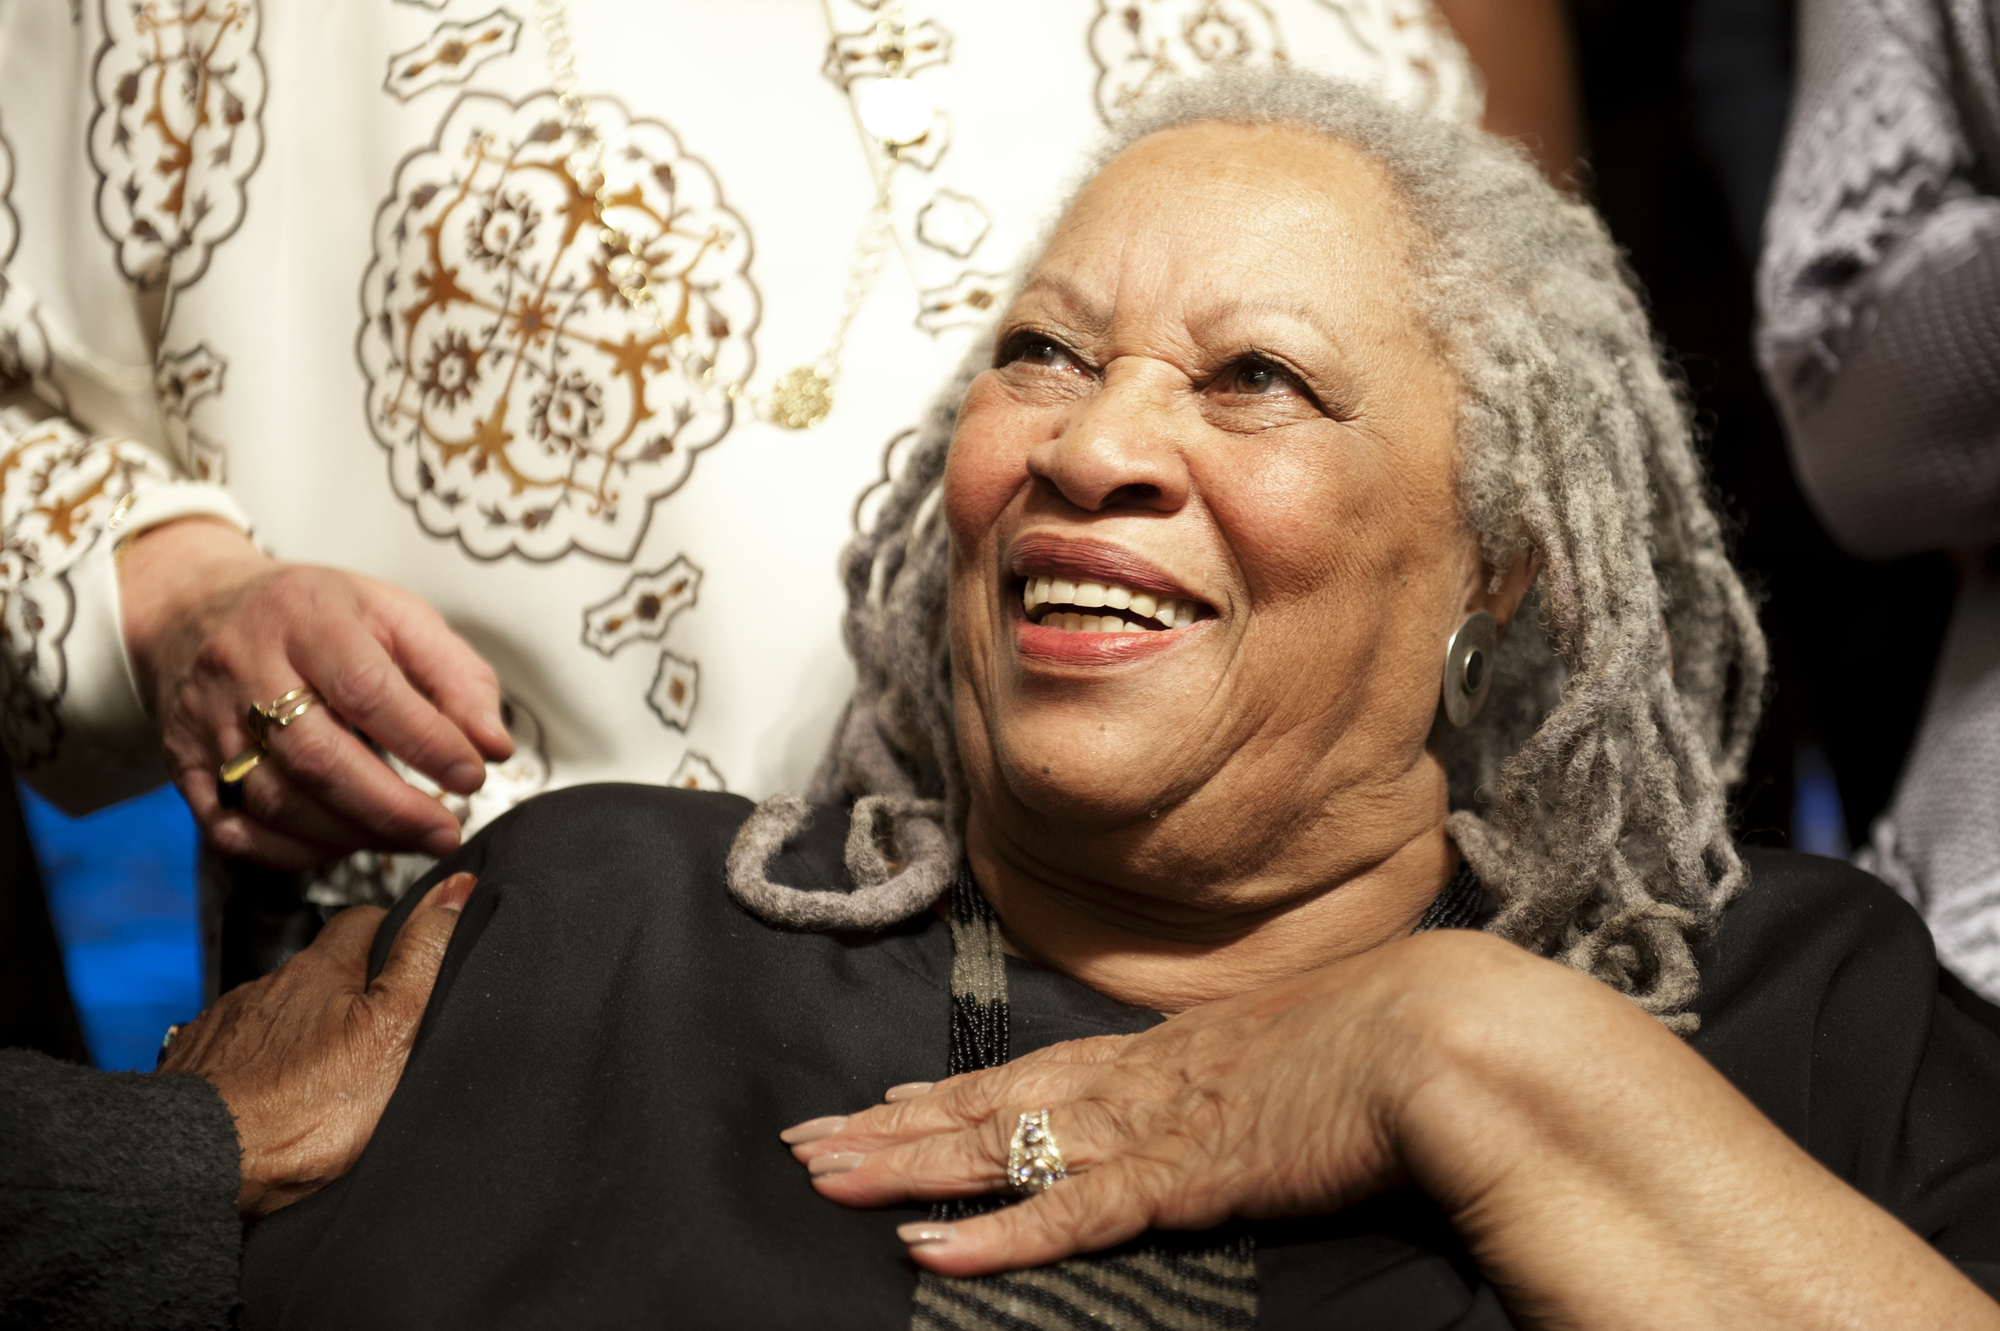 http://spec.lib.vt.edu/pickup/Omeka_upload/ToniMorrison_Photo_LoganWallace.jpg